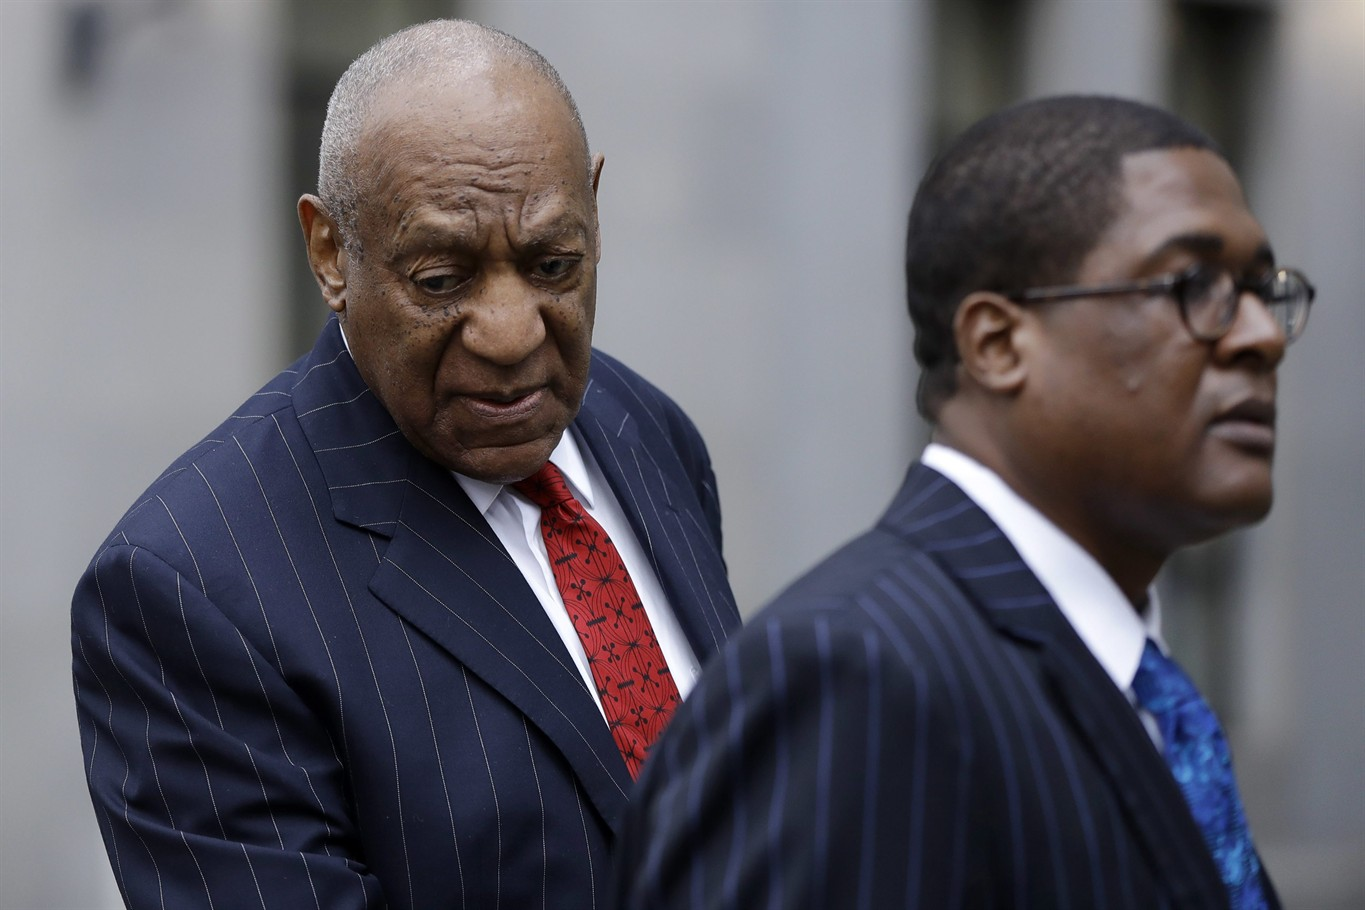 Cosby arrived Thursday morning for the final pretrial hearing in suburban Philadelphia